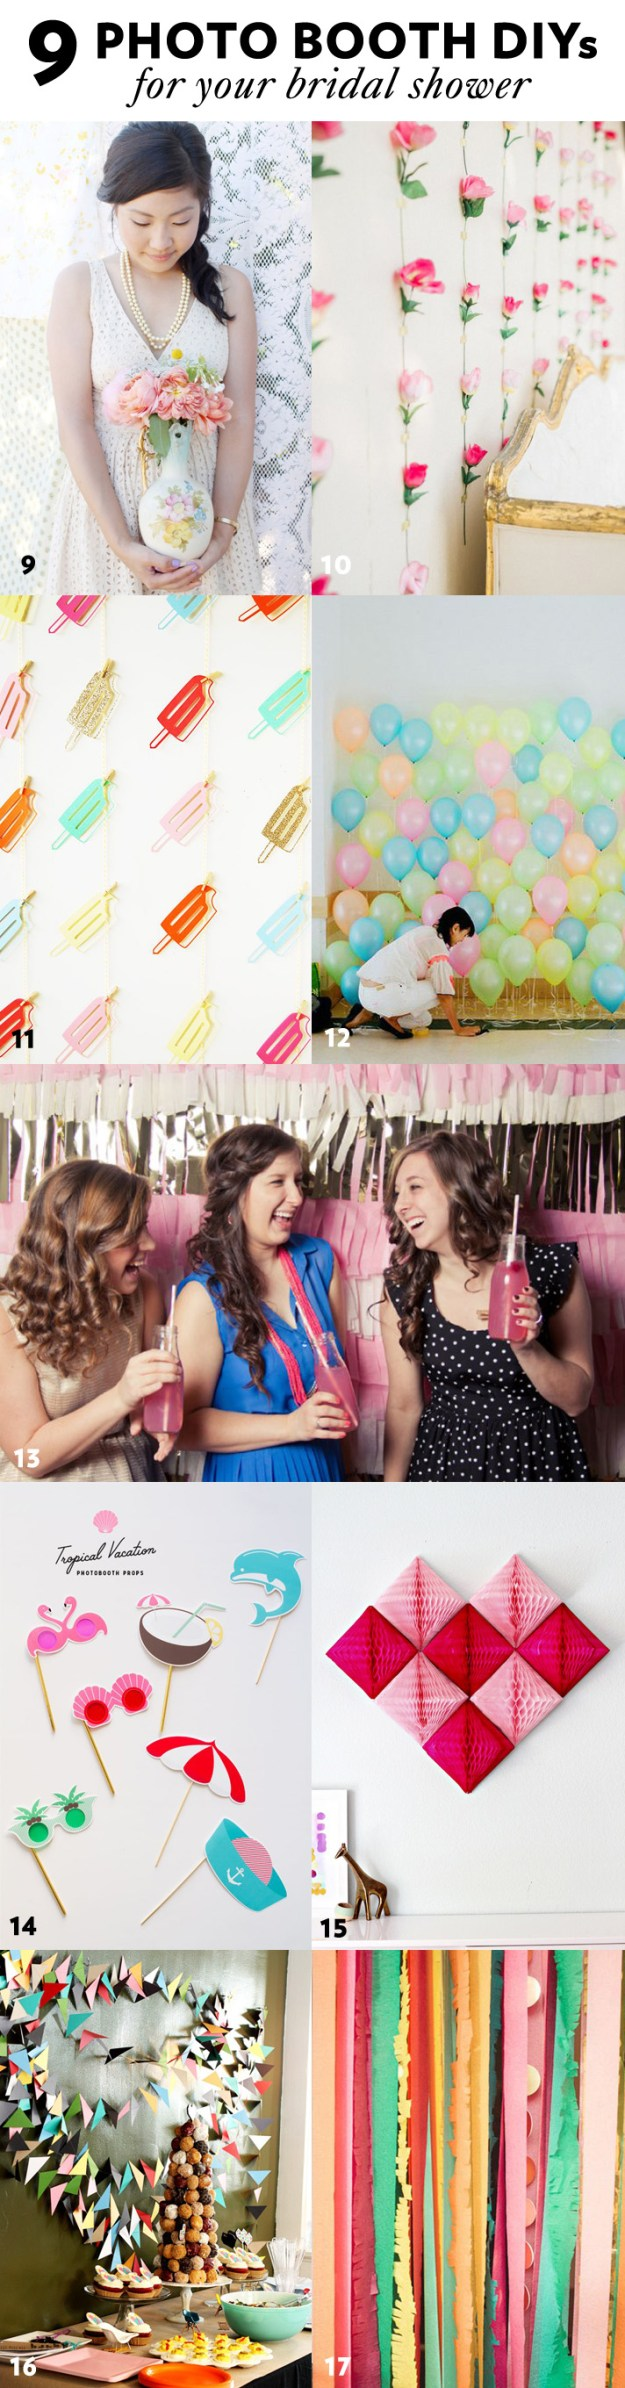 9 Photo Booth DIYs for your bridal shower + 41 More Simple and Stylish DIY Bridal Shower & Bachelorette Decoration Ideas from Ultimate Bridesmaid